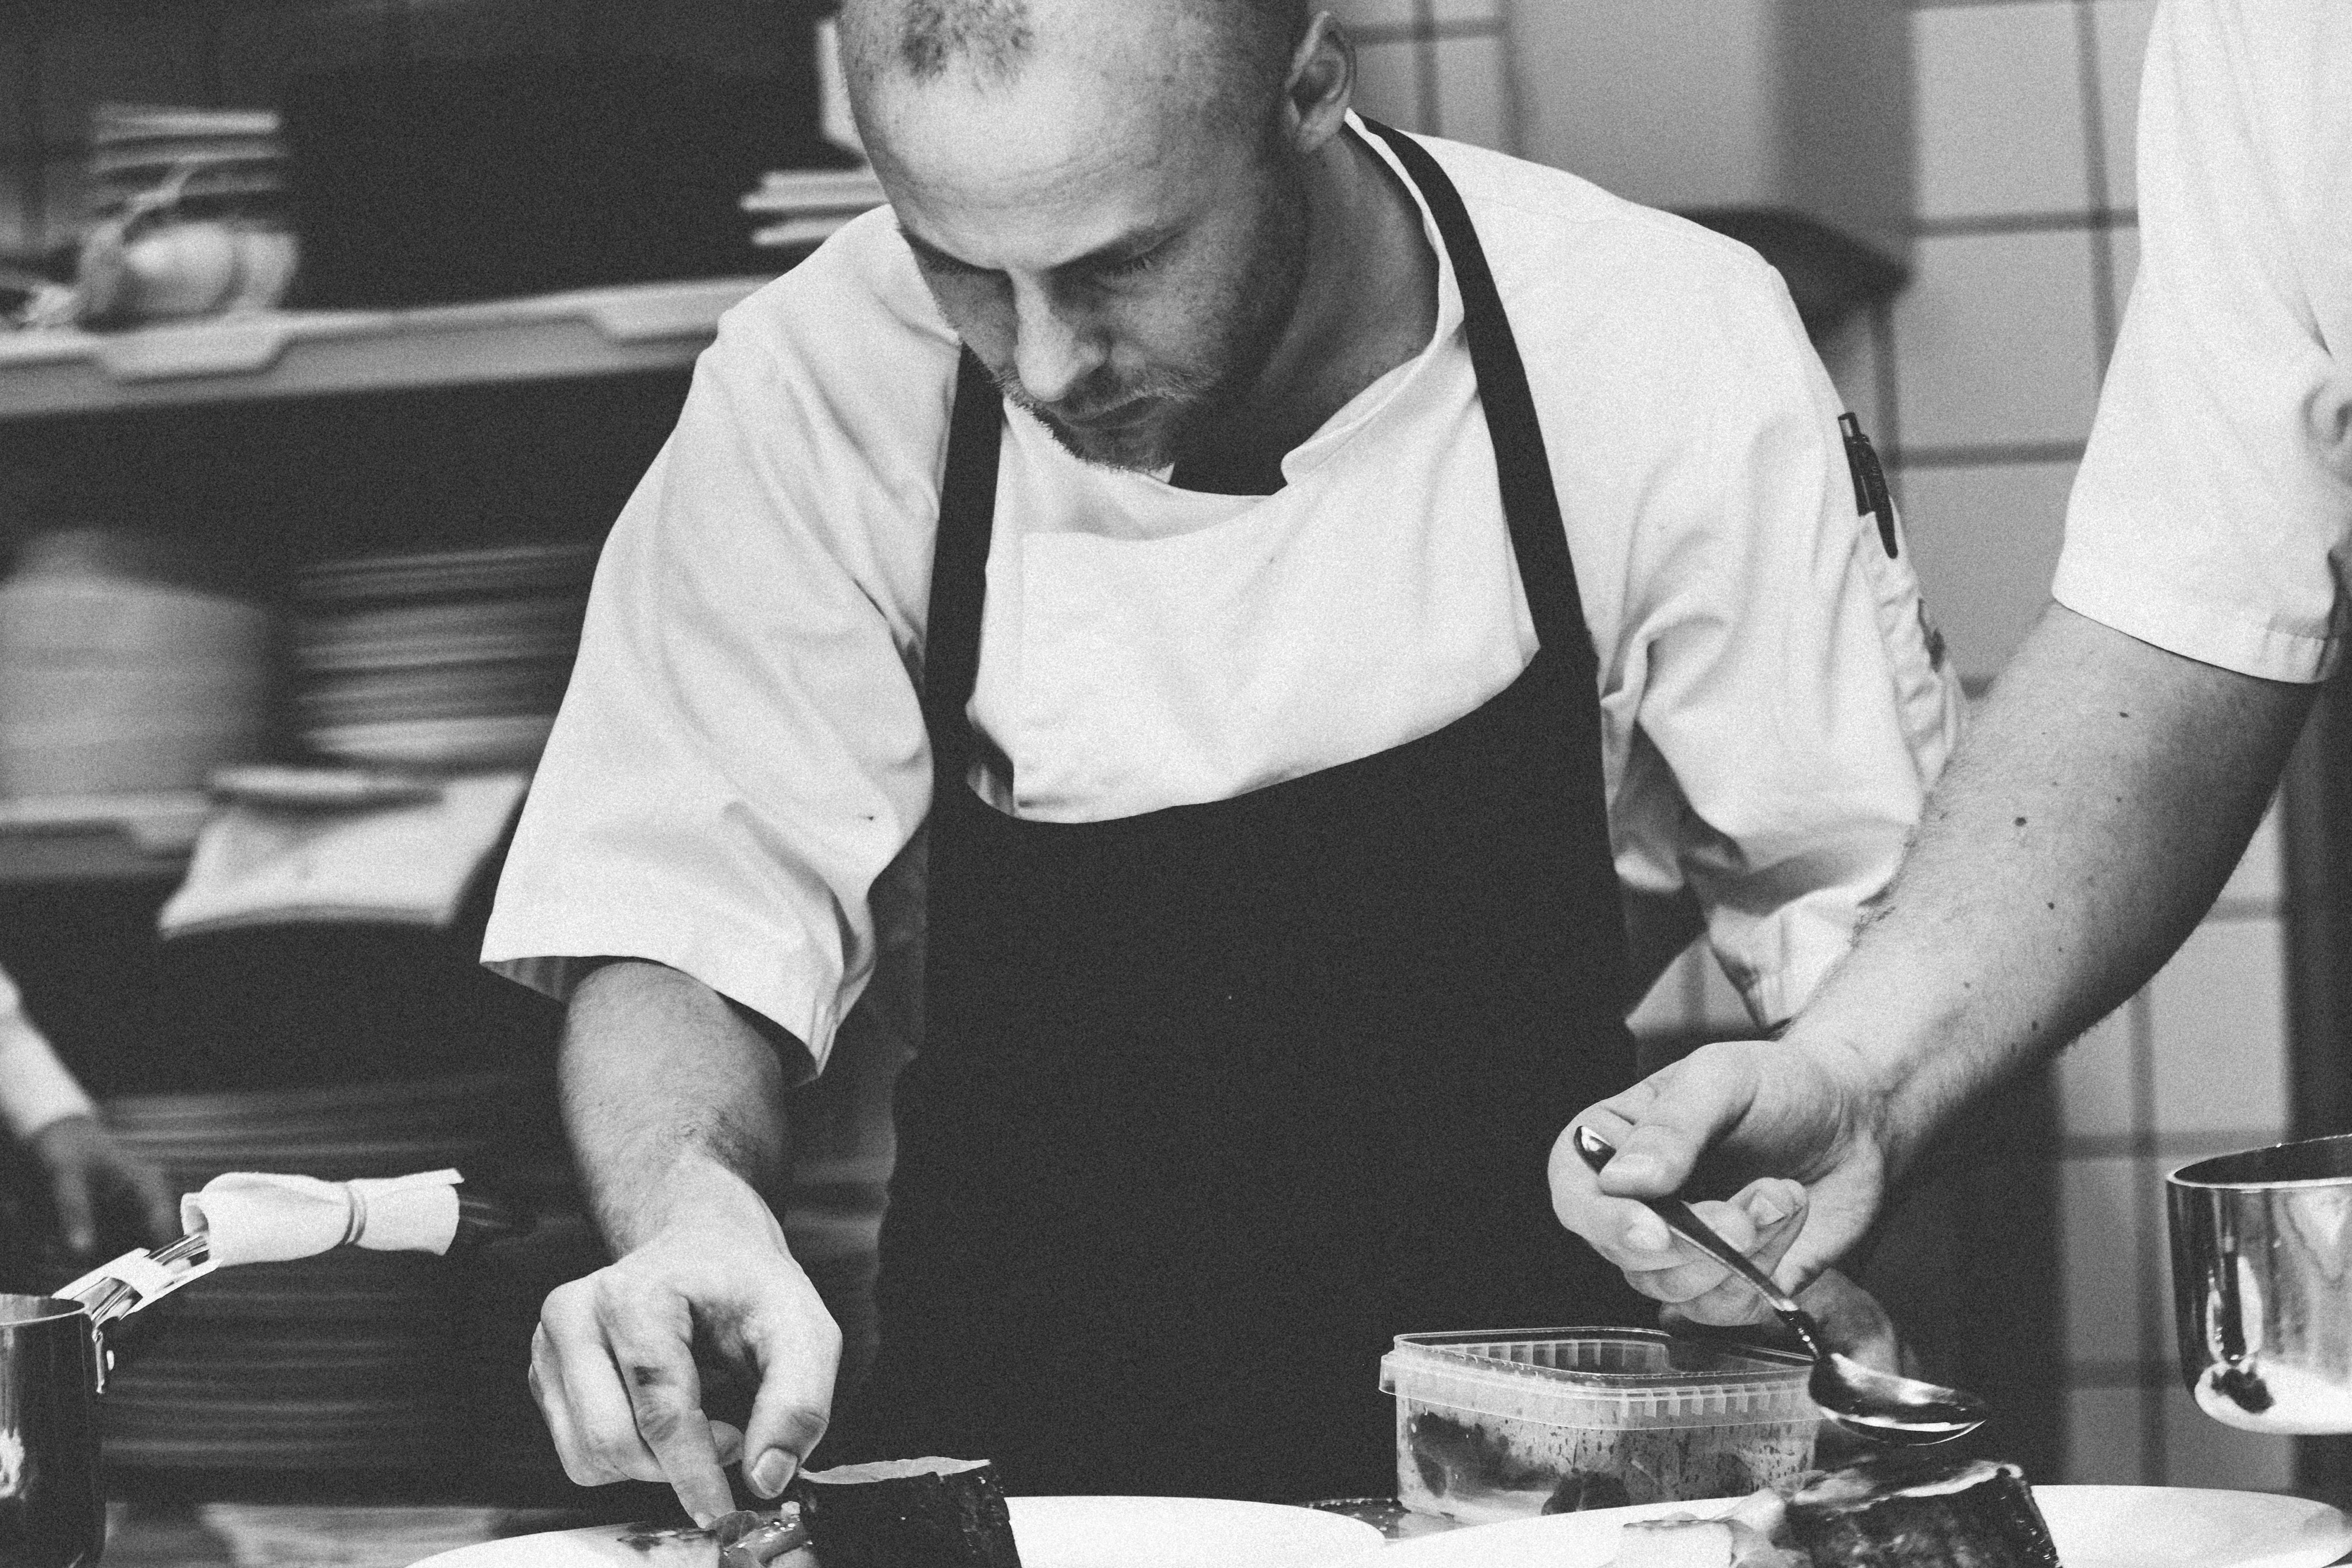 Chefs and restaurateurs can find all the menu labeling resources they need—from important FDA documents to online nutrition analysis software—on MenuCalc's website.